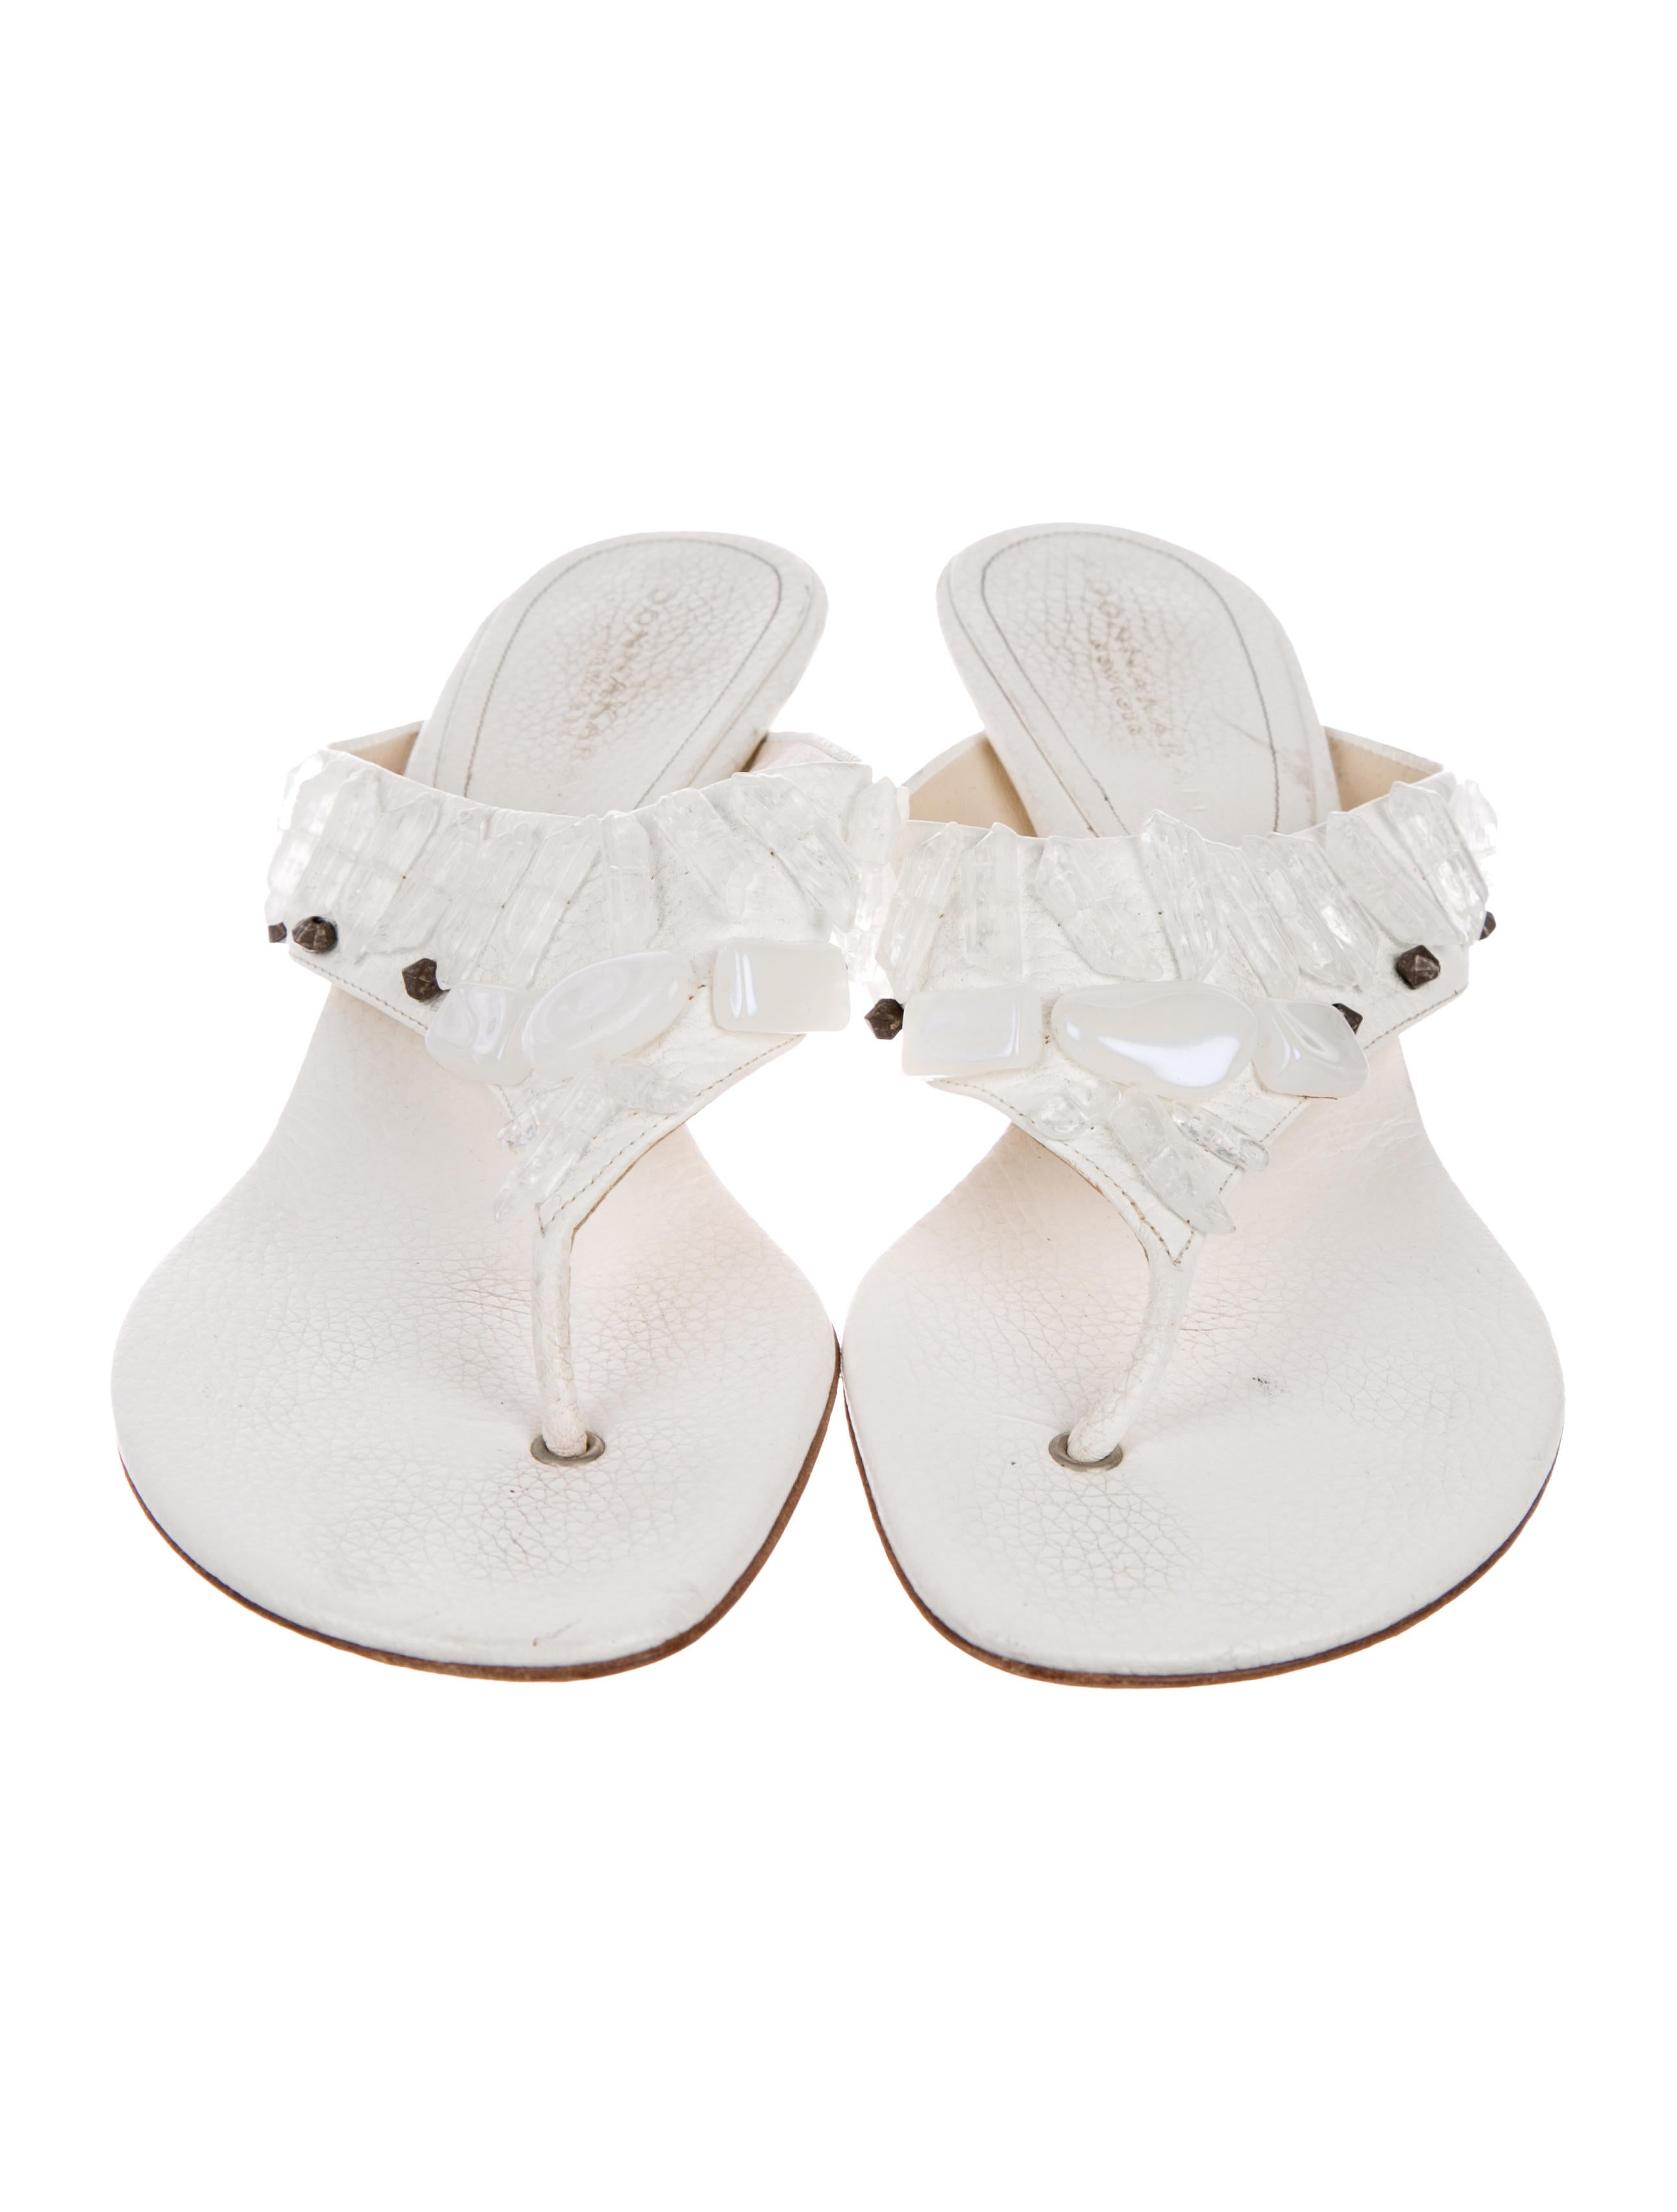 Donna Karan Crystal Slide Sandals cheap best prices factory outlet discount outlet wcphf3RO